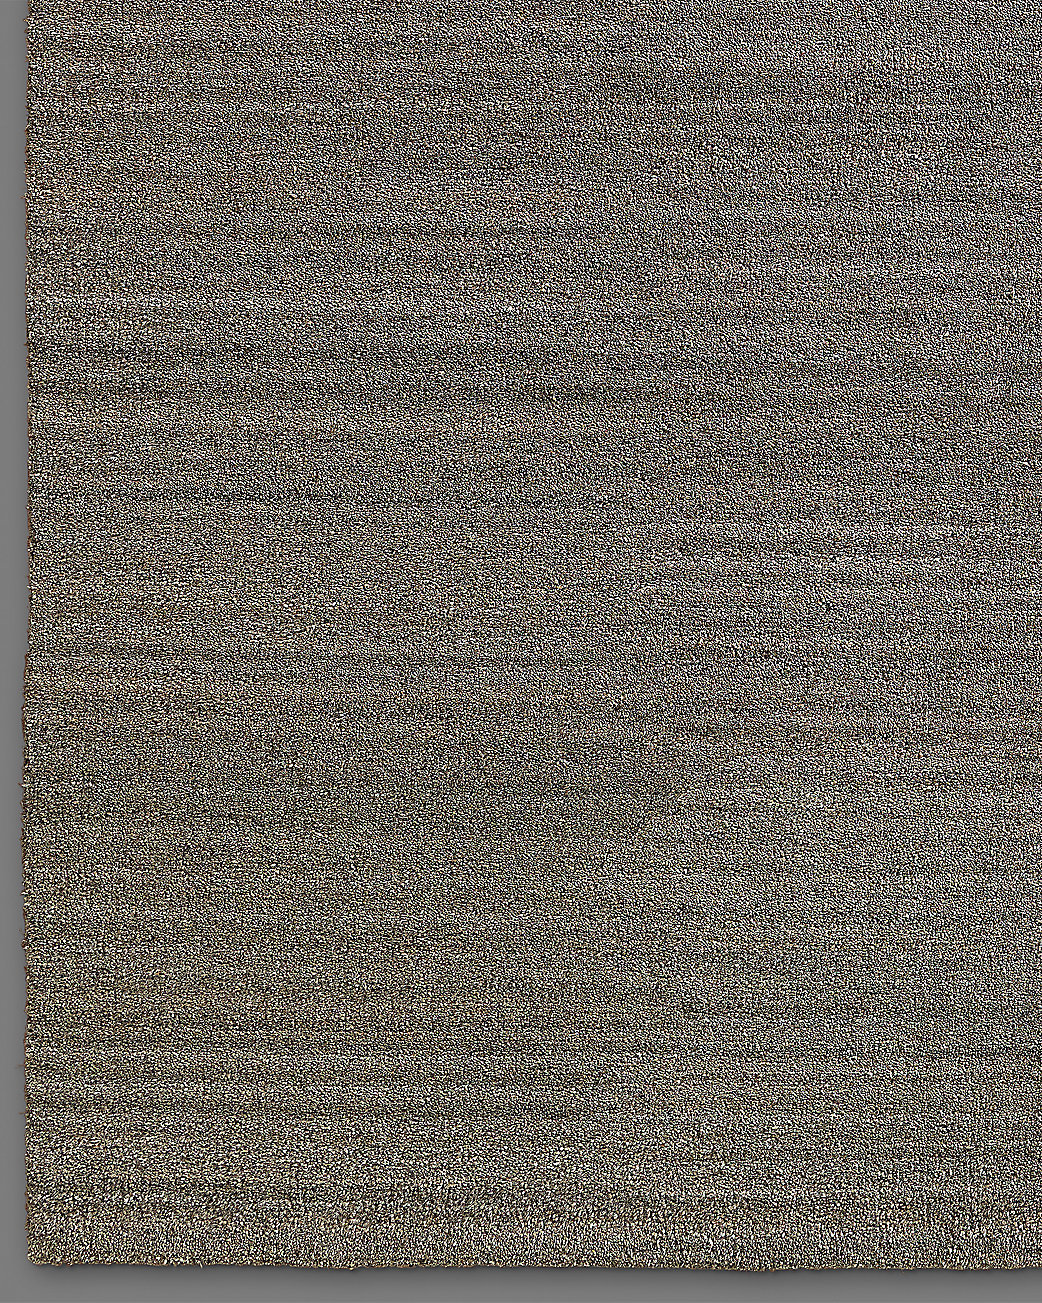 Luxe Heathered Wool Rug - Mink